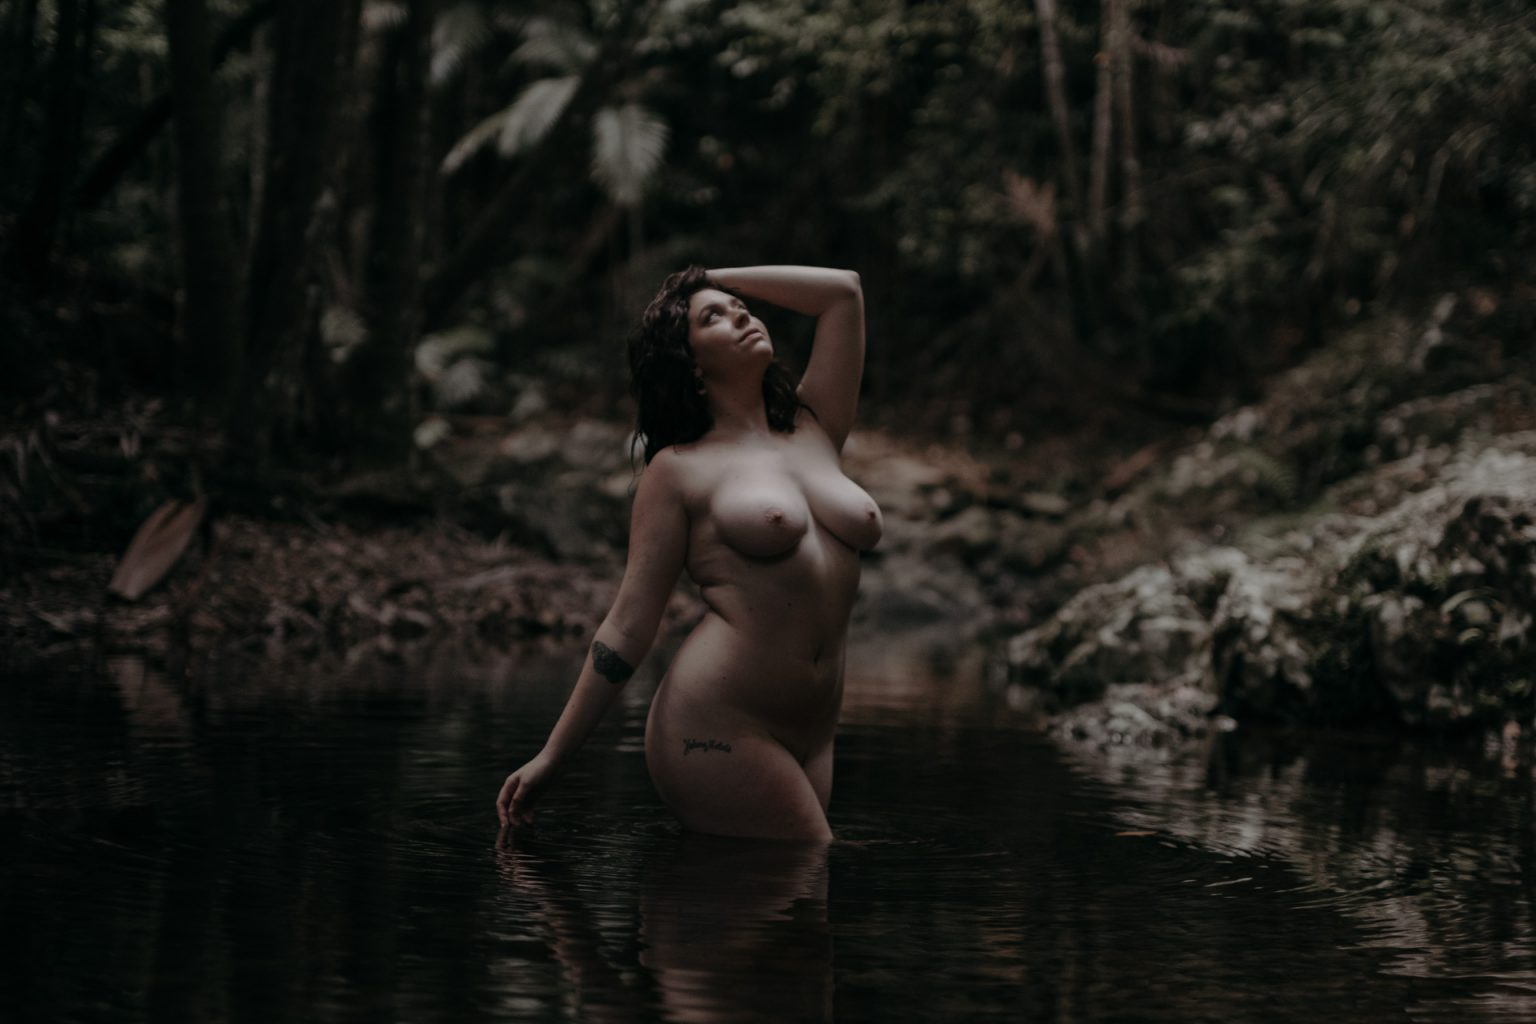 naked woman in forest pool Currumbin